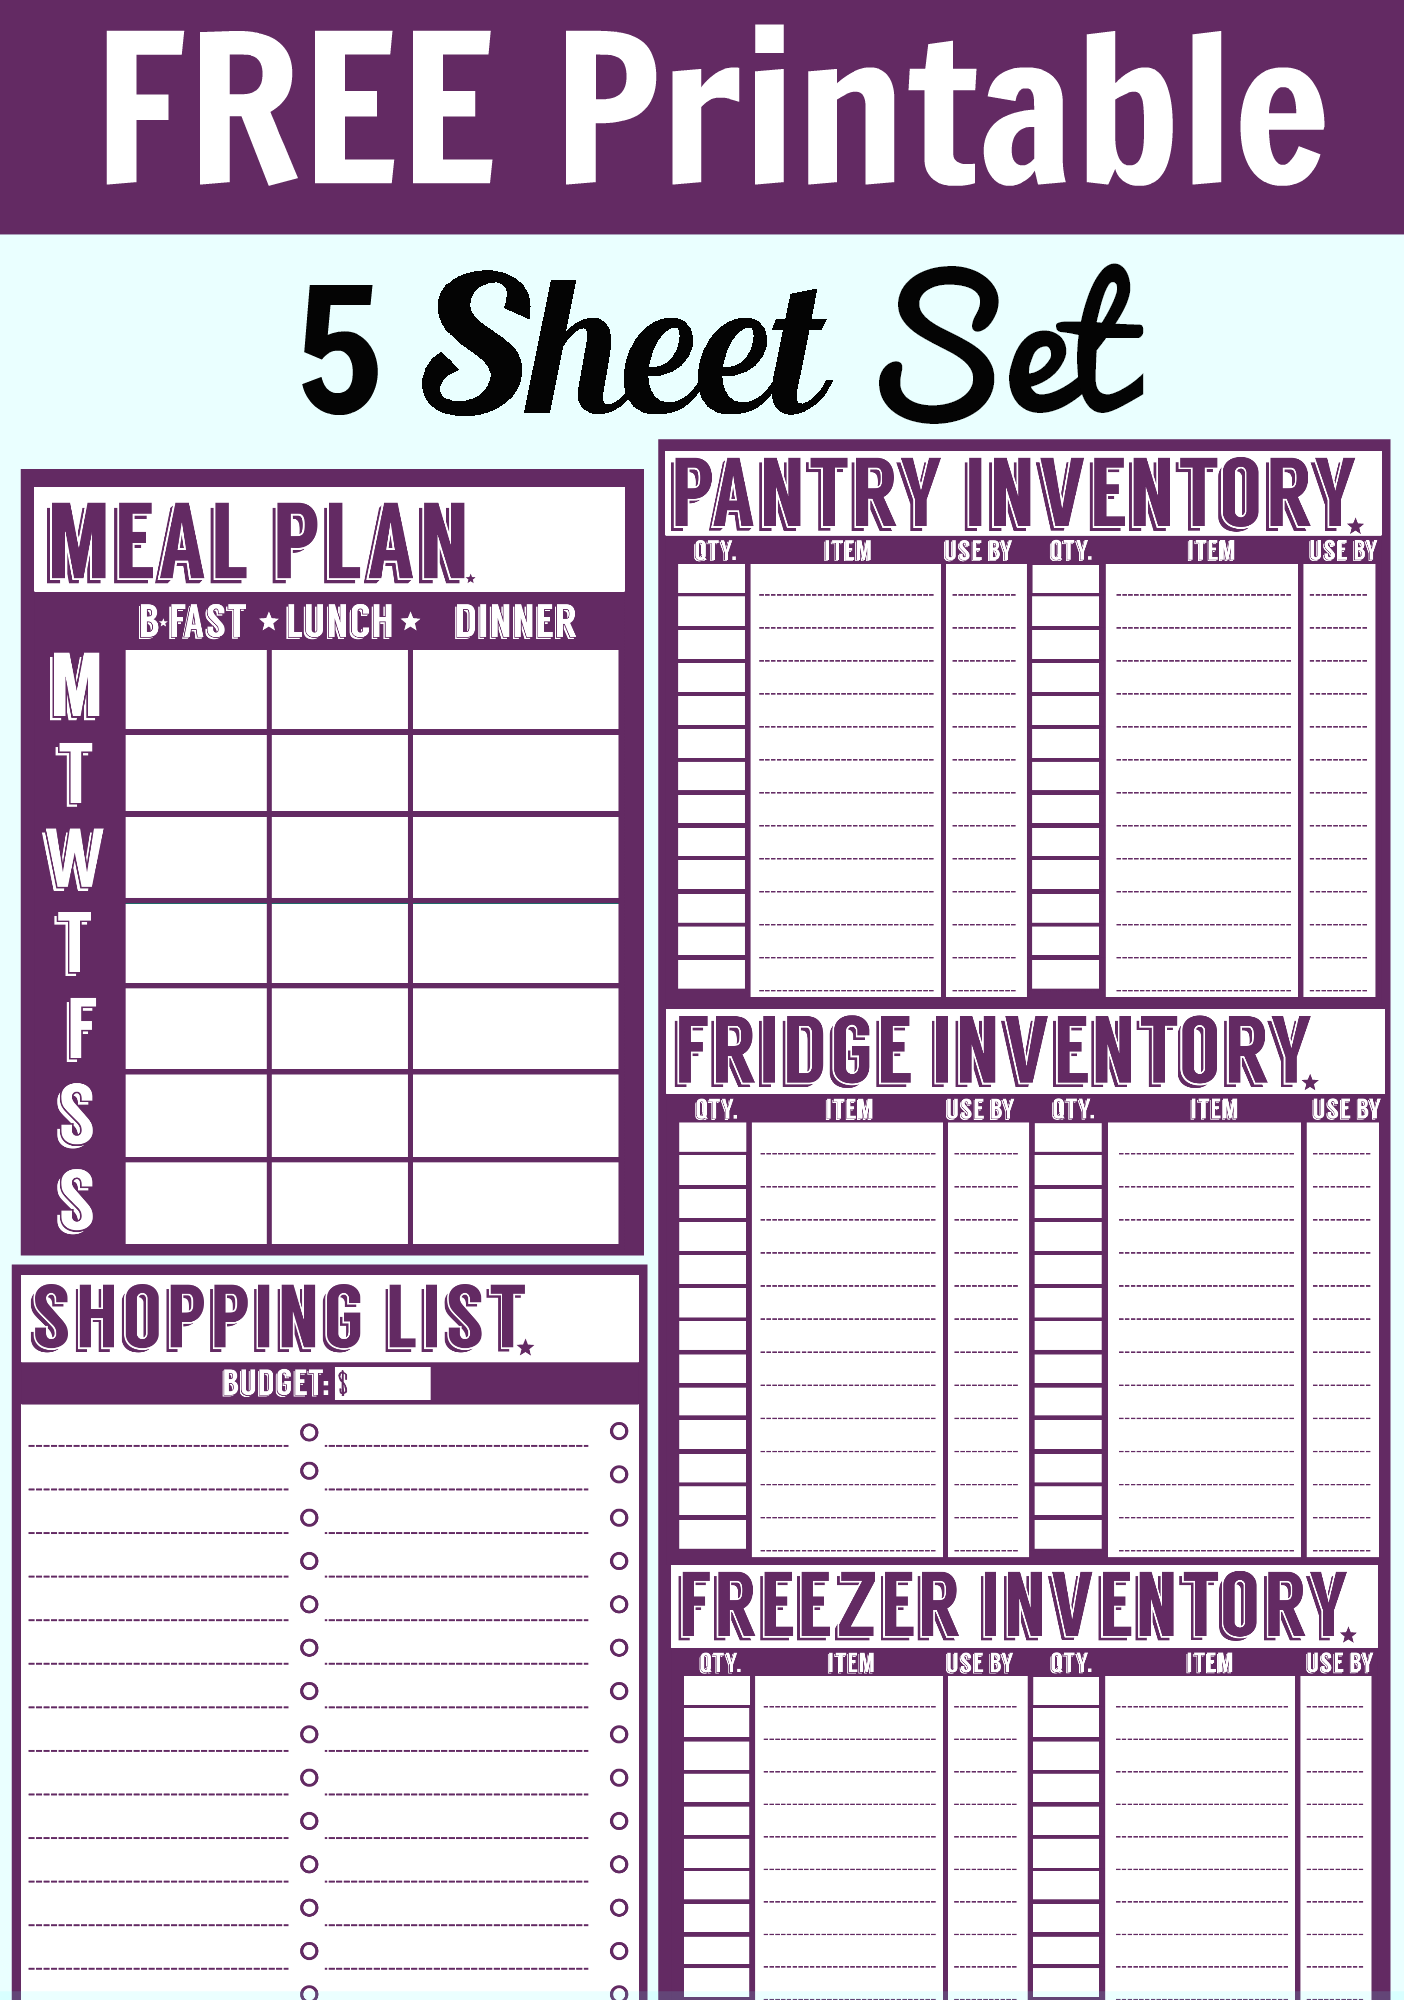 Free 5 Sheet Printable Set Menu Planner Shopping List